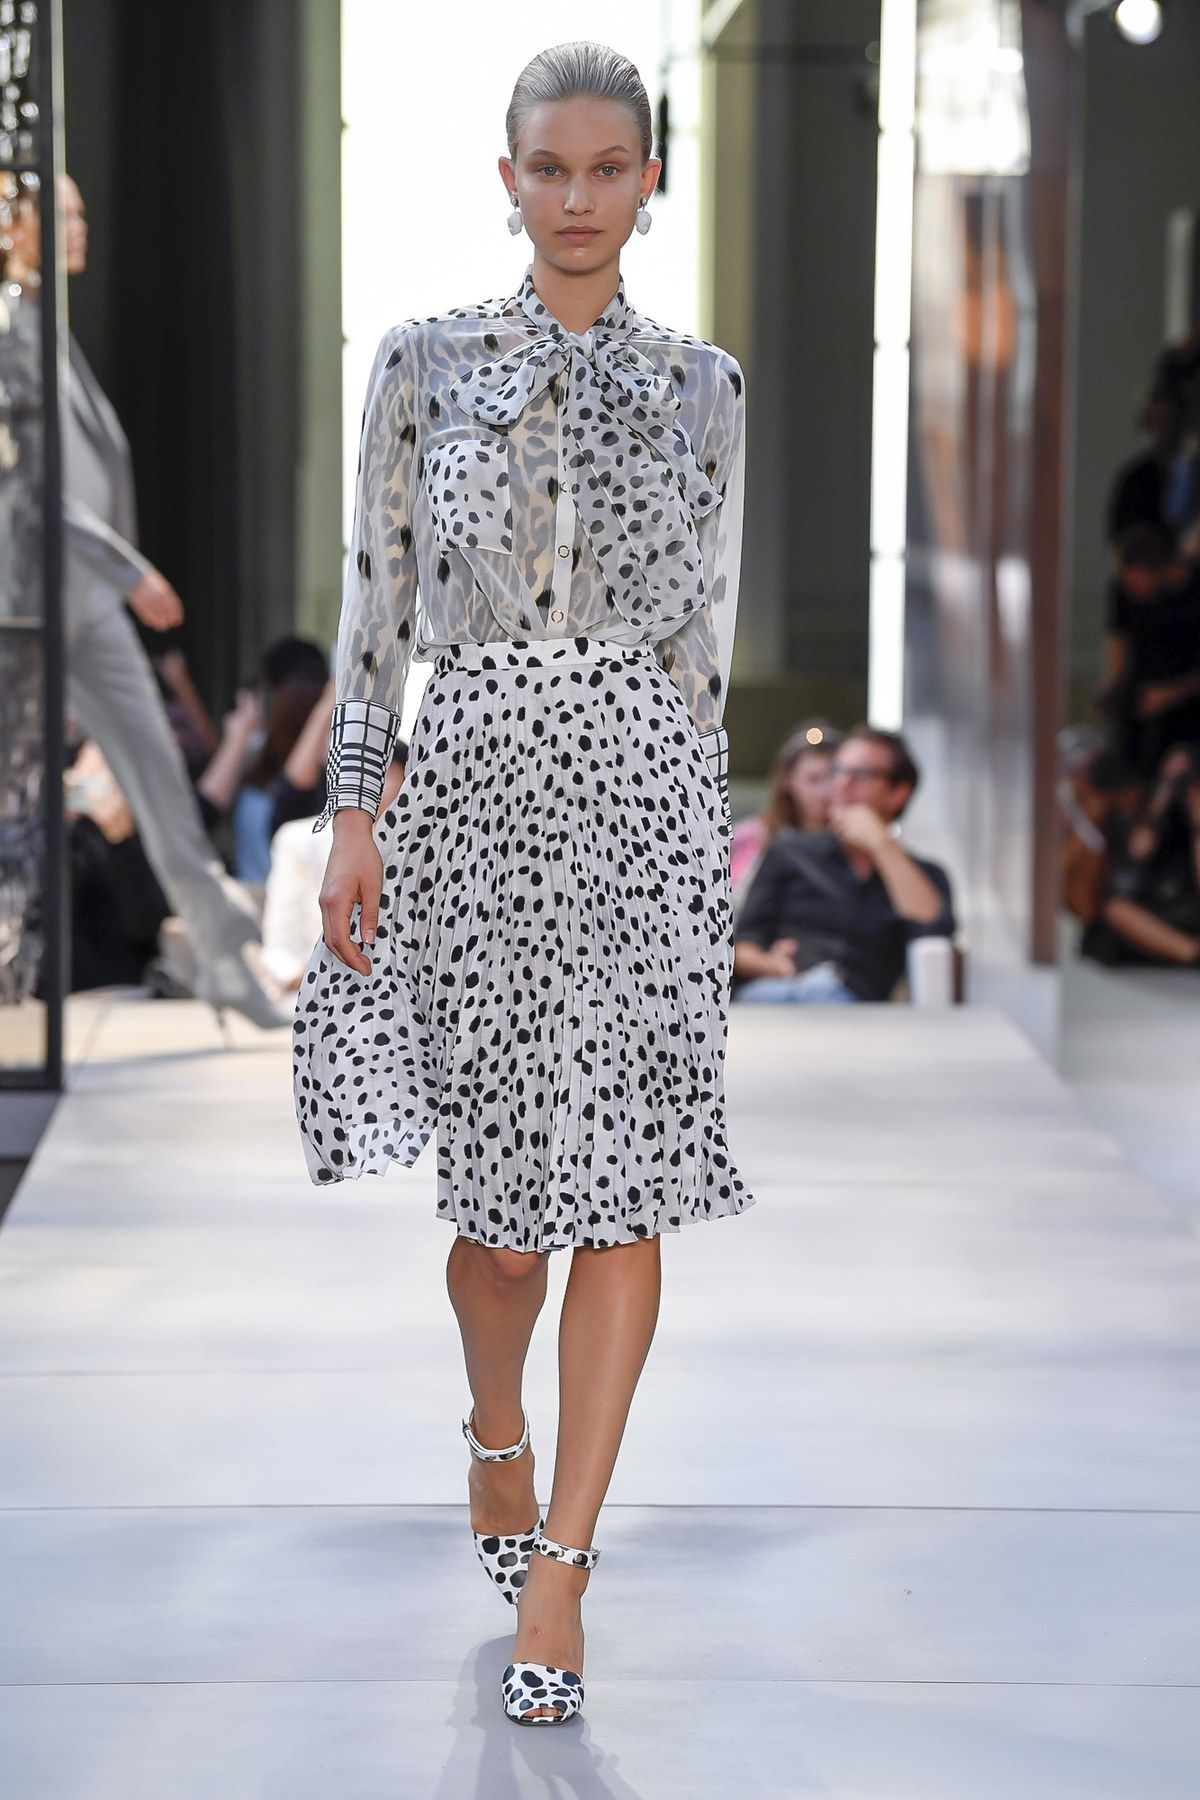 Forum on this topic: Burberry Unveils Fall 2019 See-Now-Buy-Now Collection at , burberry-unveils-fall-2019-see-now-buy-now-collection-at/